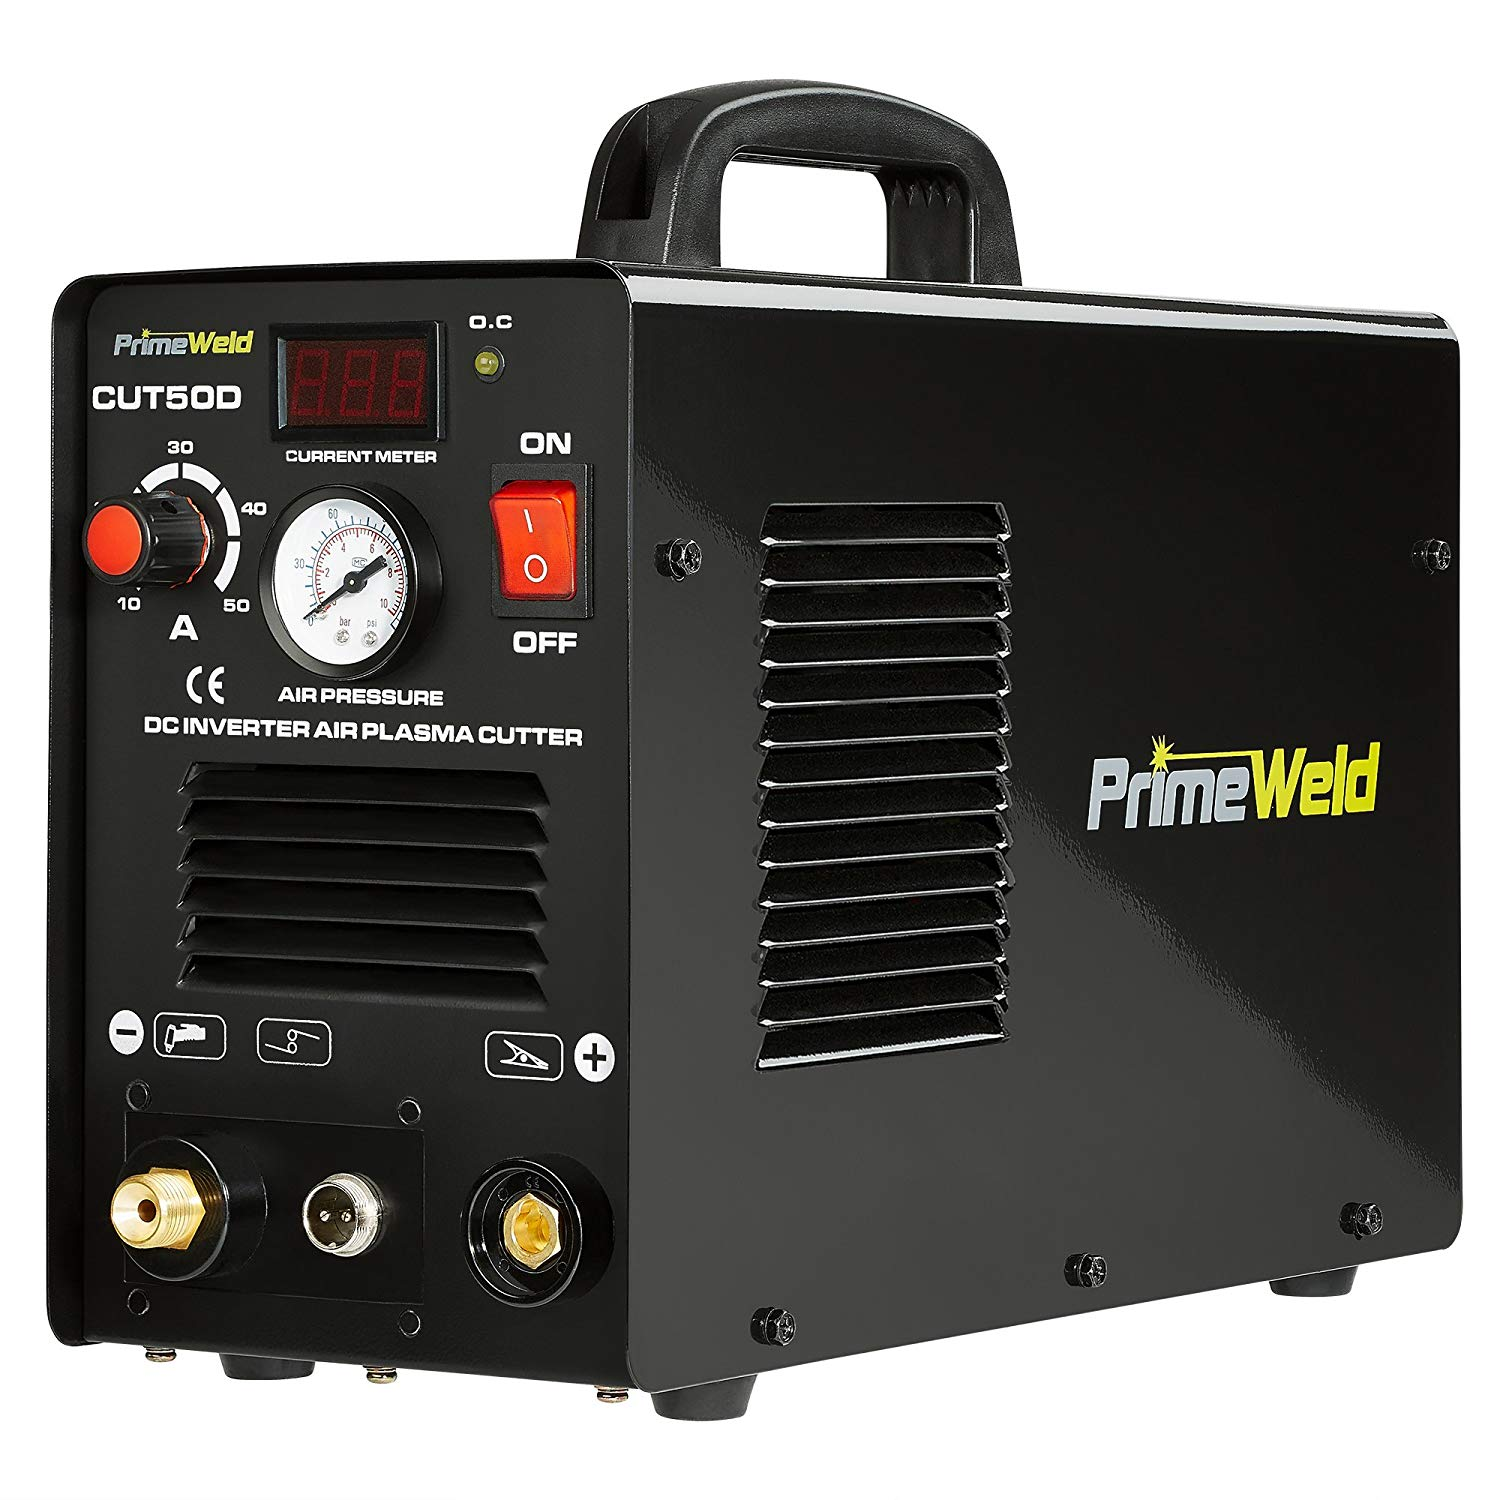 Primeweld 50 Amp Plasma Cutter Review - Fantastic Machine Around $300